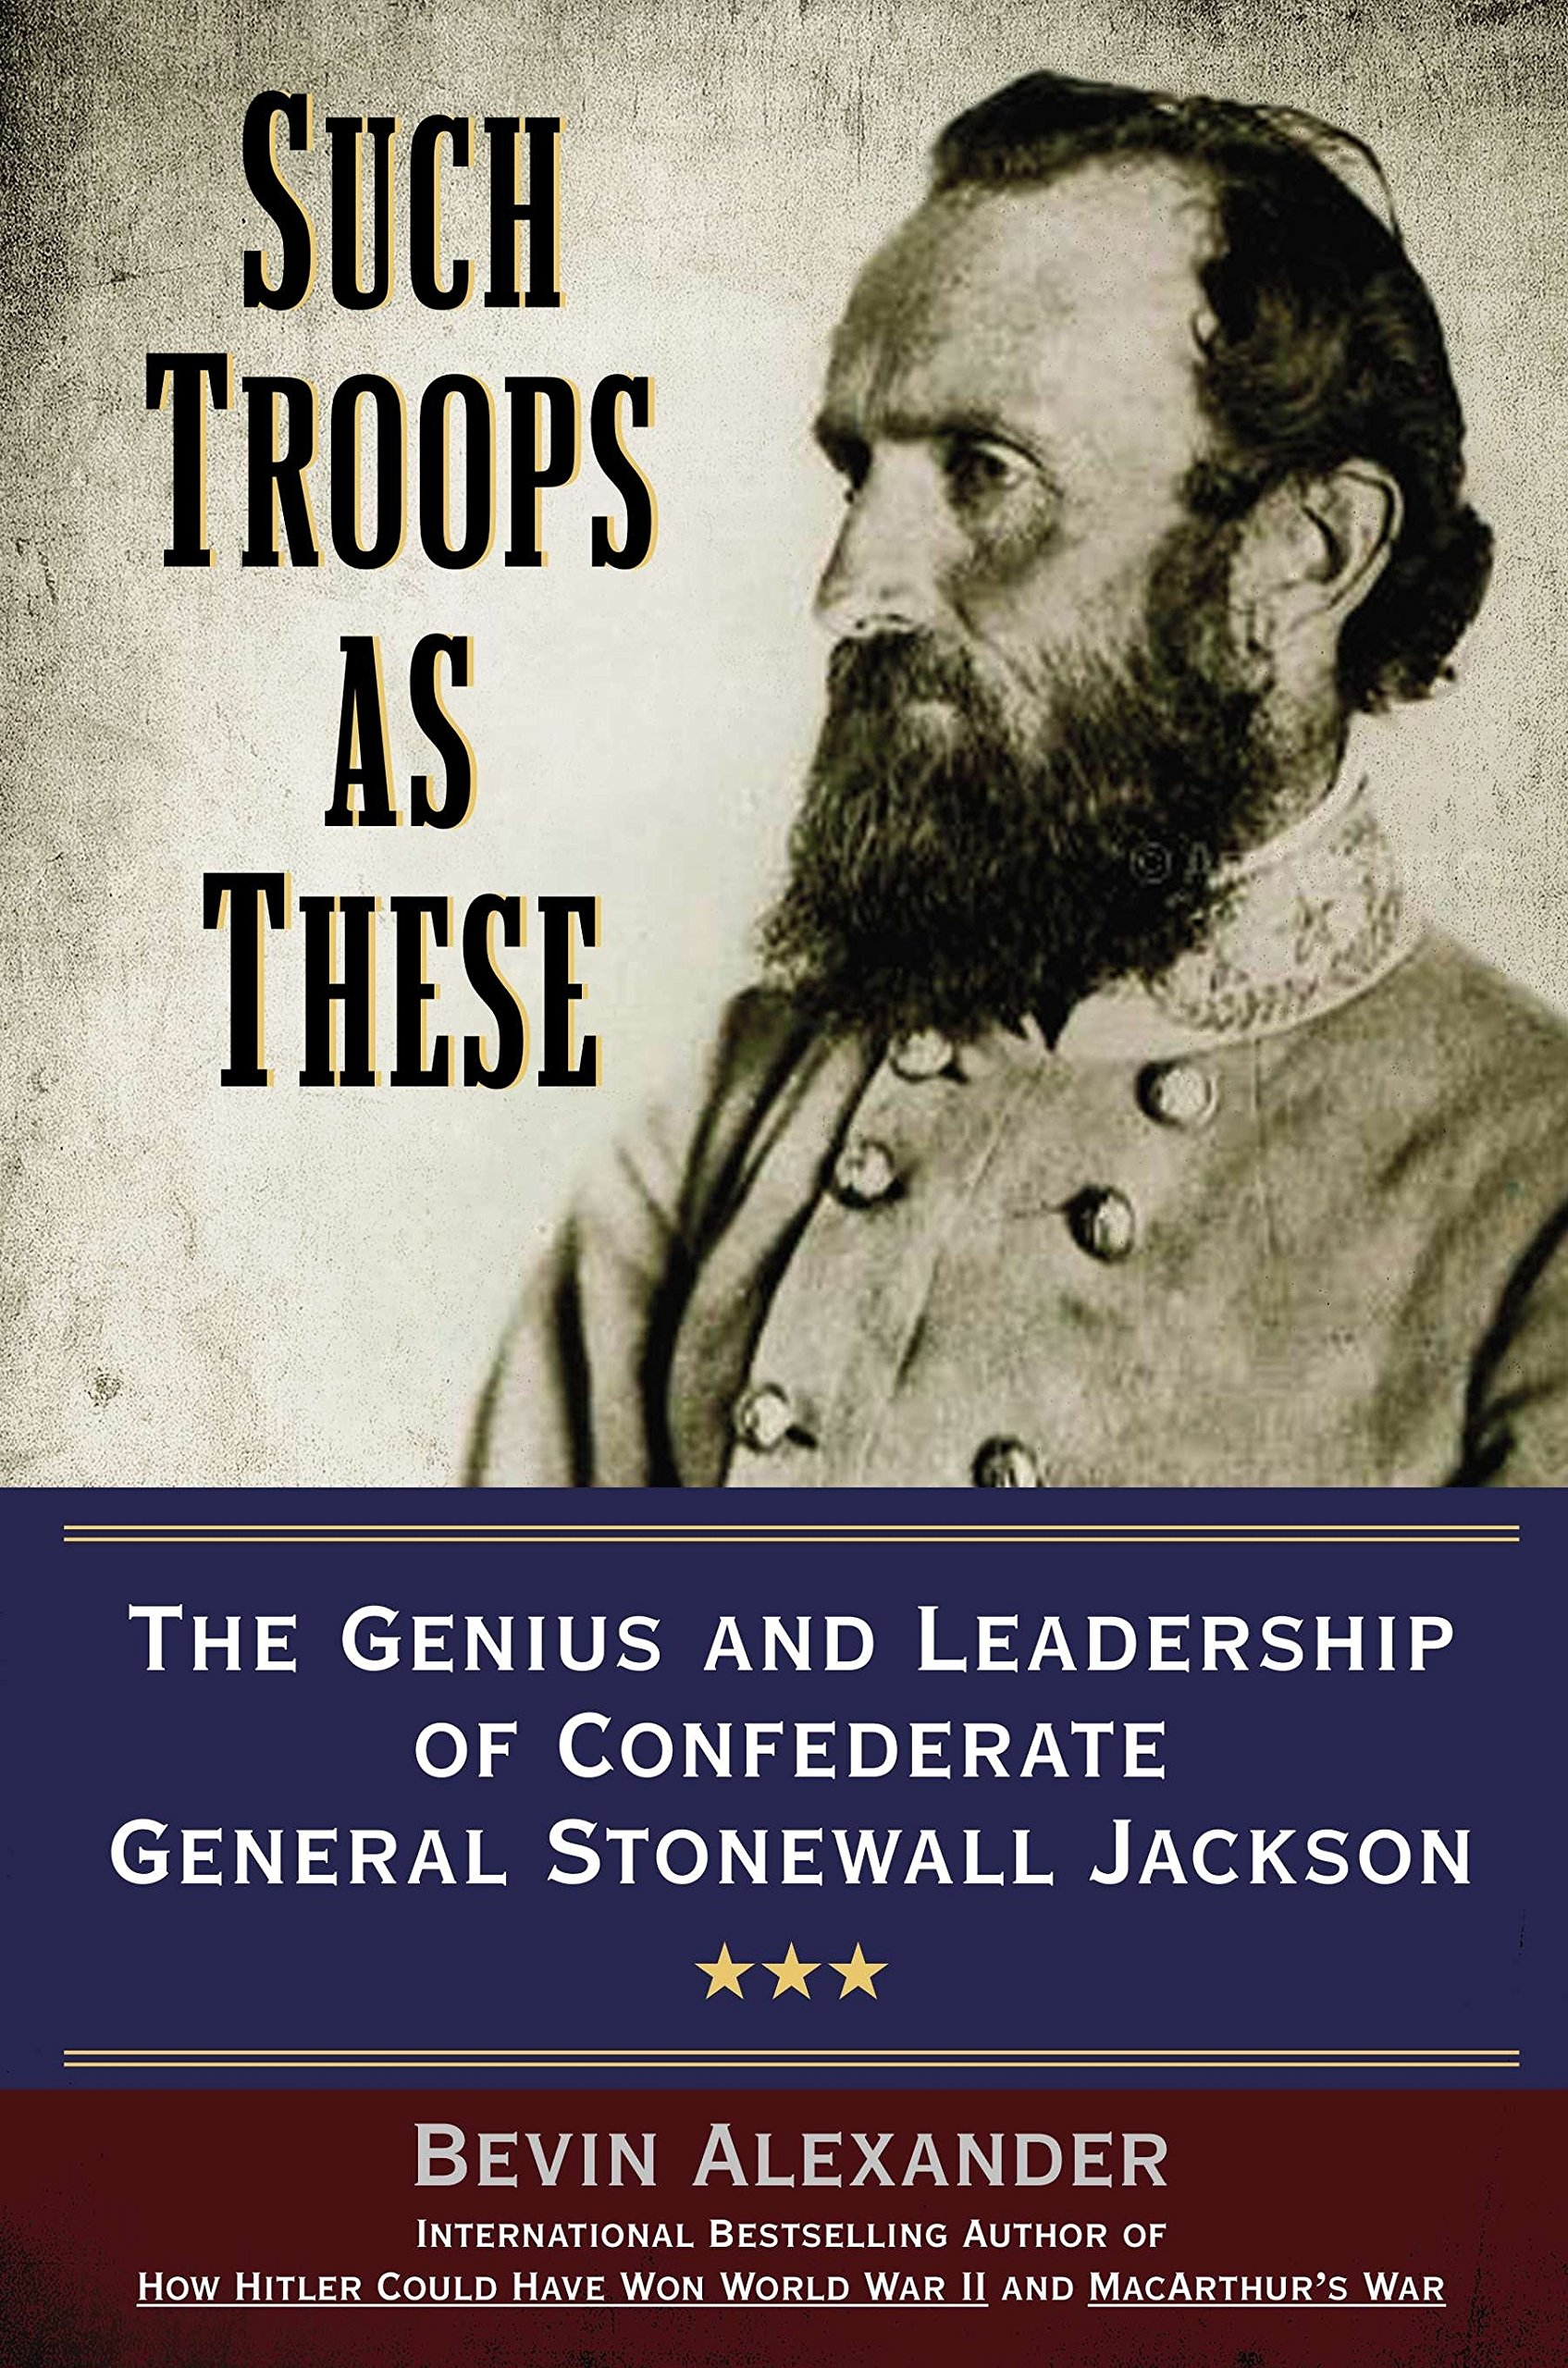 Download Such Troops as These: The Genius and Leadership of Confederate General Stonewall Jackson pdf epub